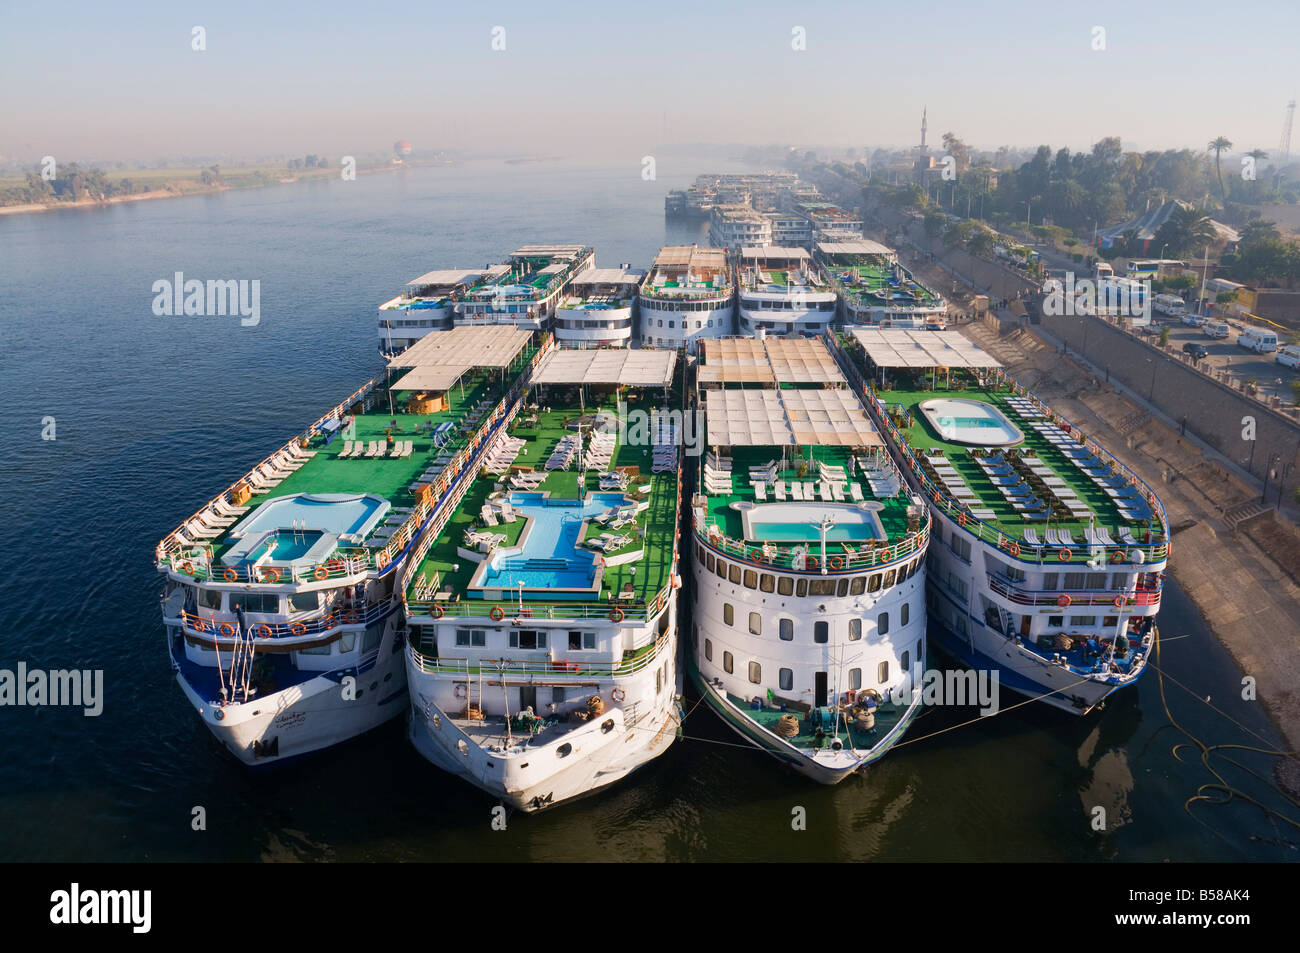 Cruise ships on the Nile, Luxor, Thebes, Middle Egypt, Egypt, North Africa, Africa - Stock Image